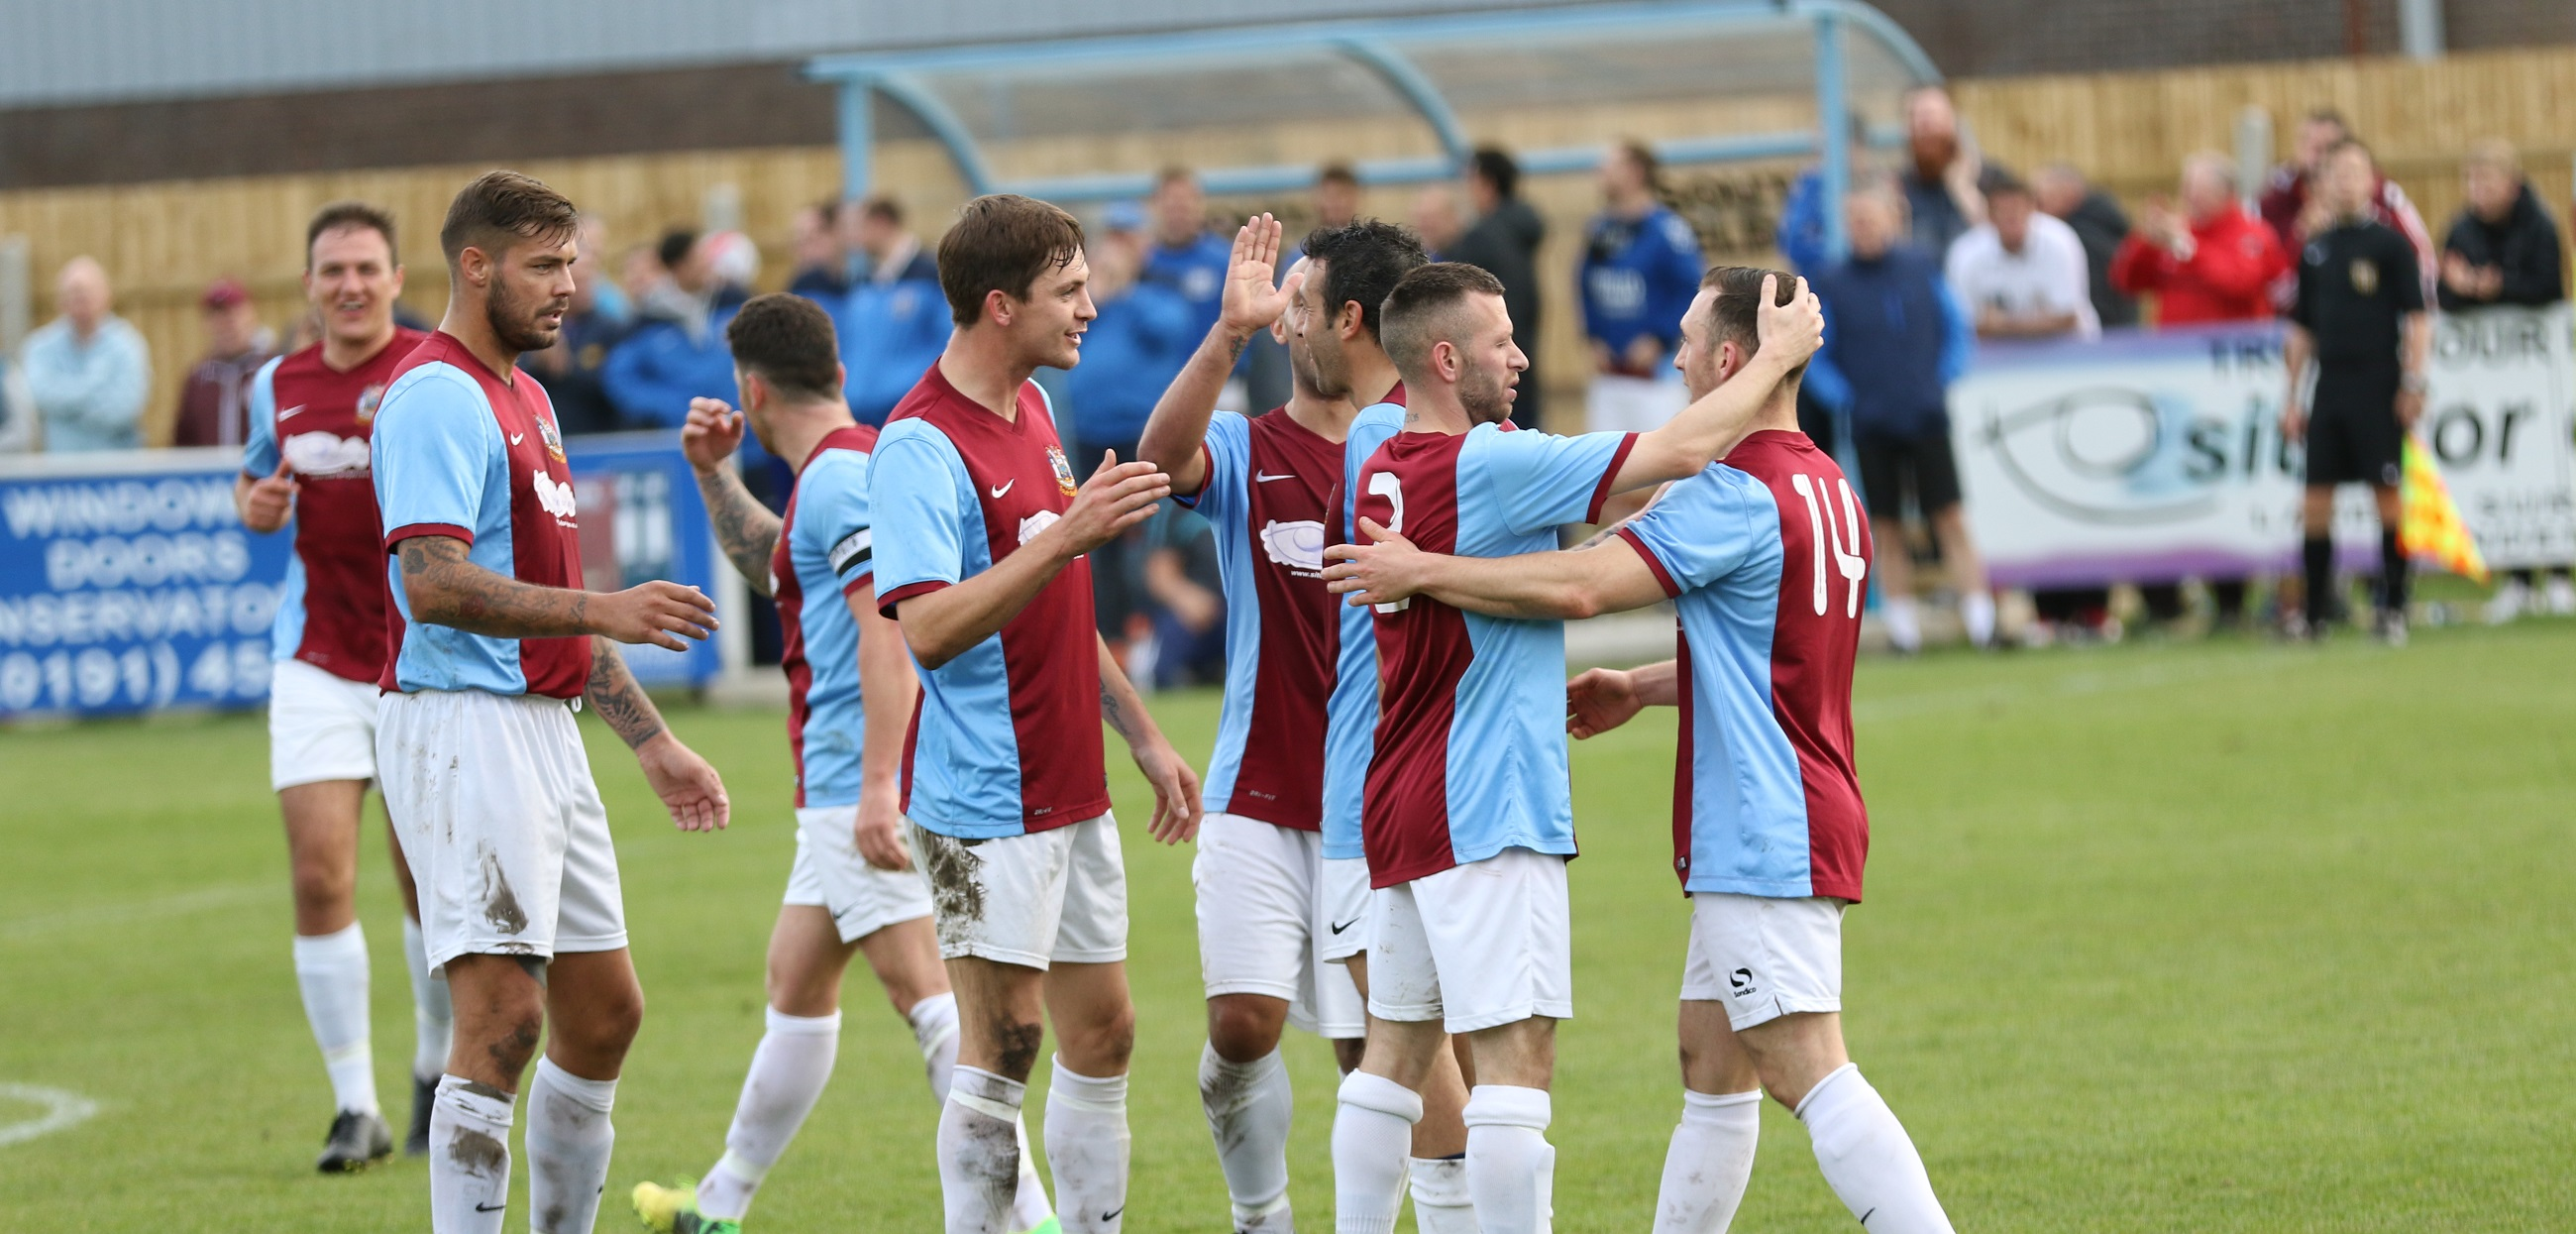 Preview: South Shields vs Billingham Synthonia